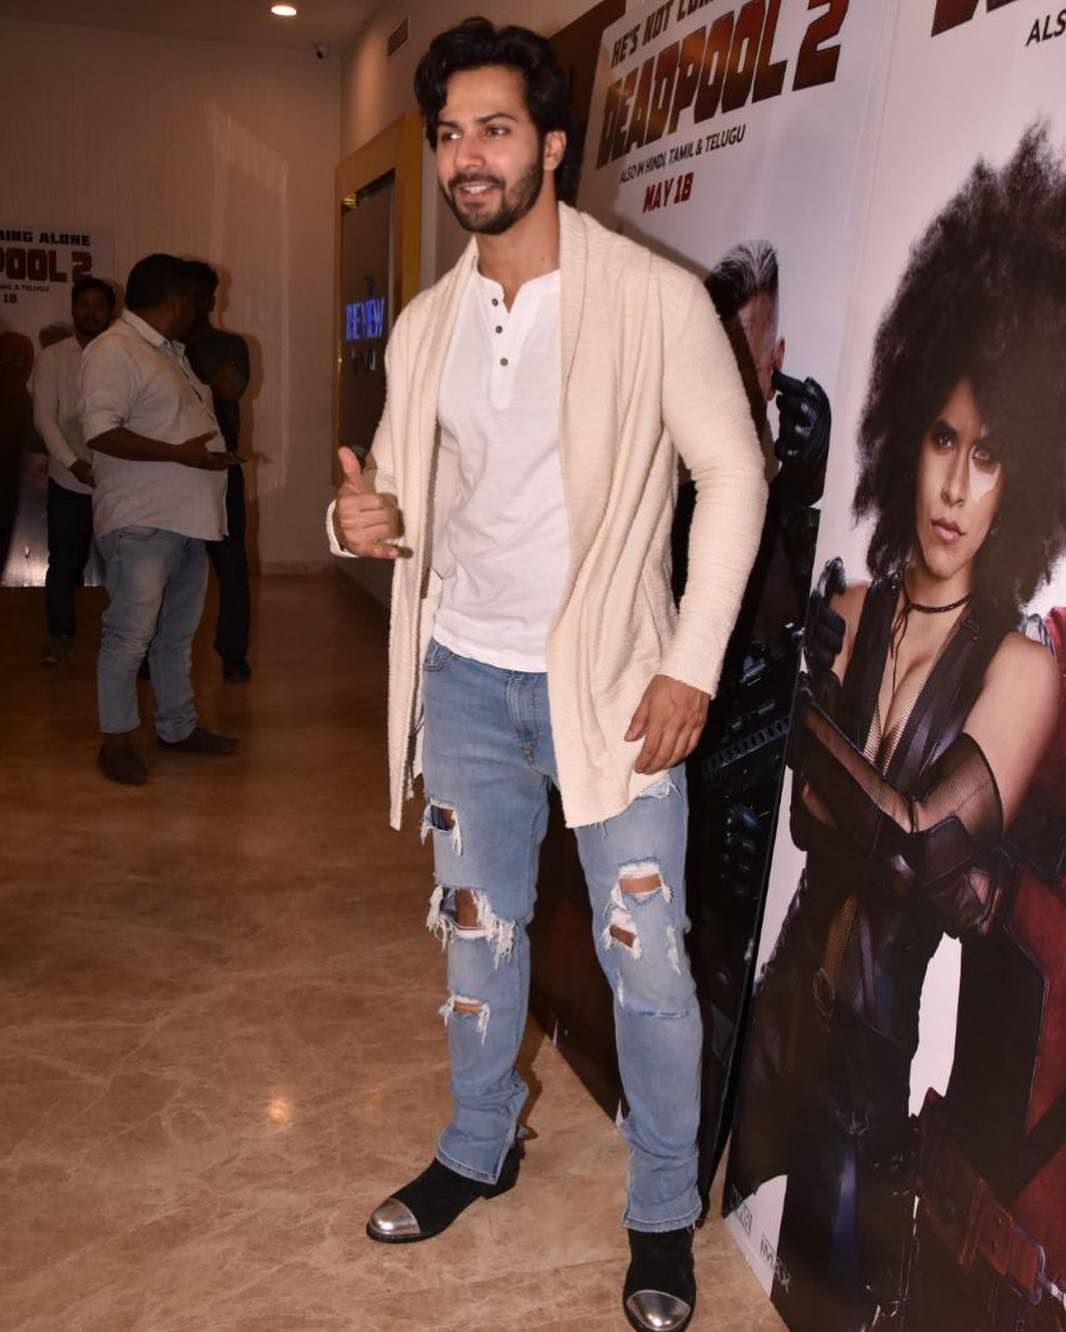 Varun Dhawan Giving Thumbs Up To Media At Deadpool2 Screening Varundhawan Deadpool2 Deadpoolfan Instabollywood Bollywoo In 2020 Fitness Fashion Bollywood Fashion